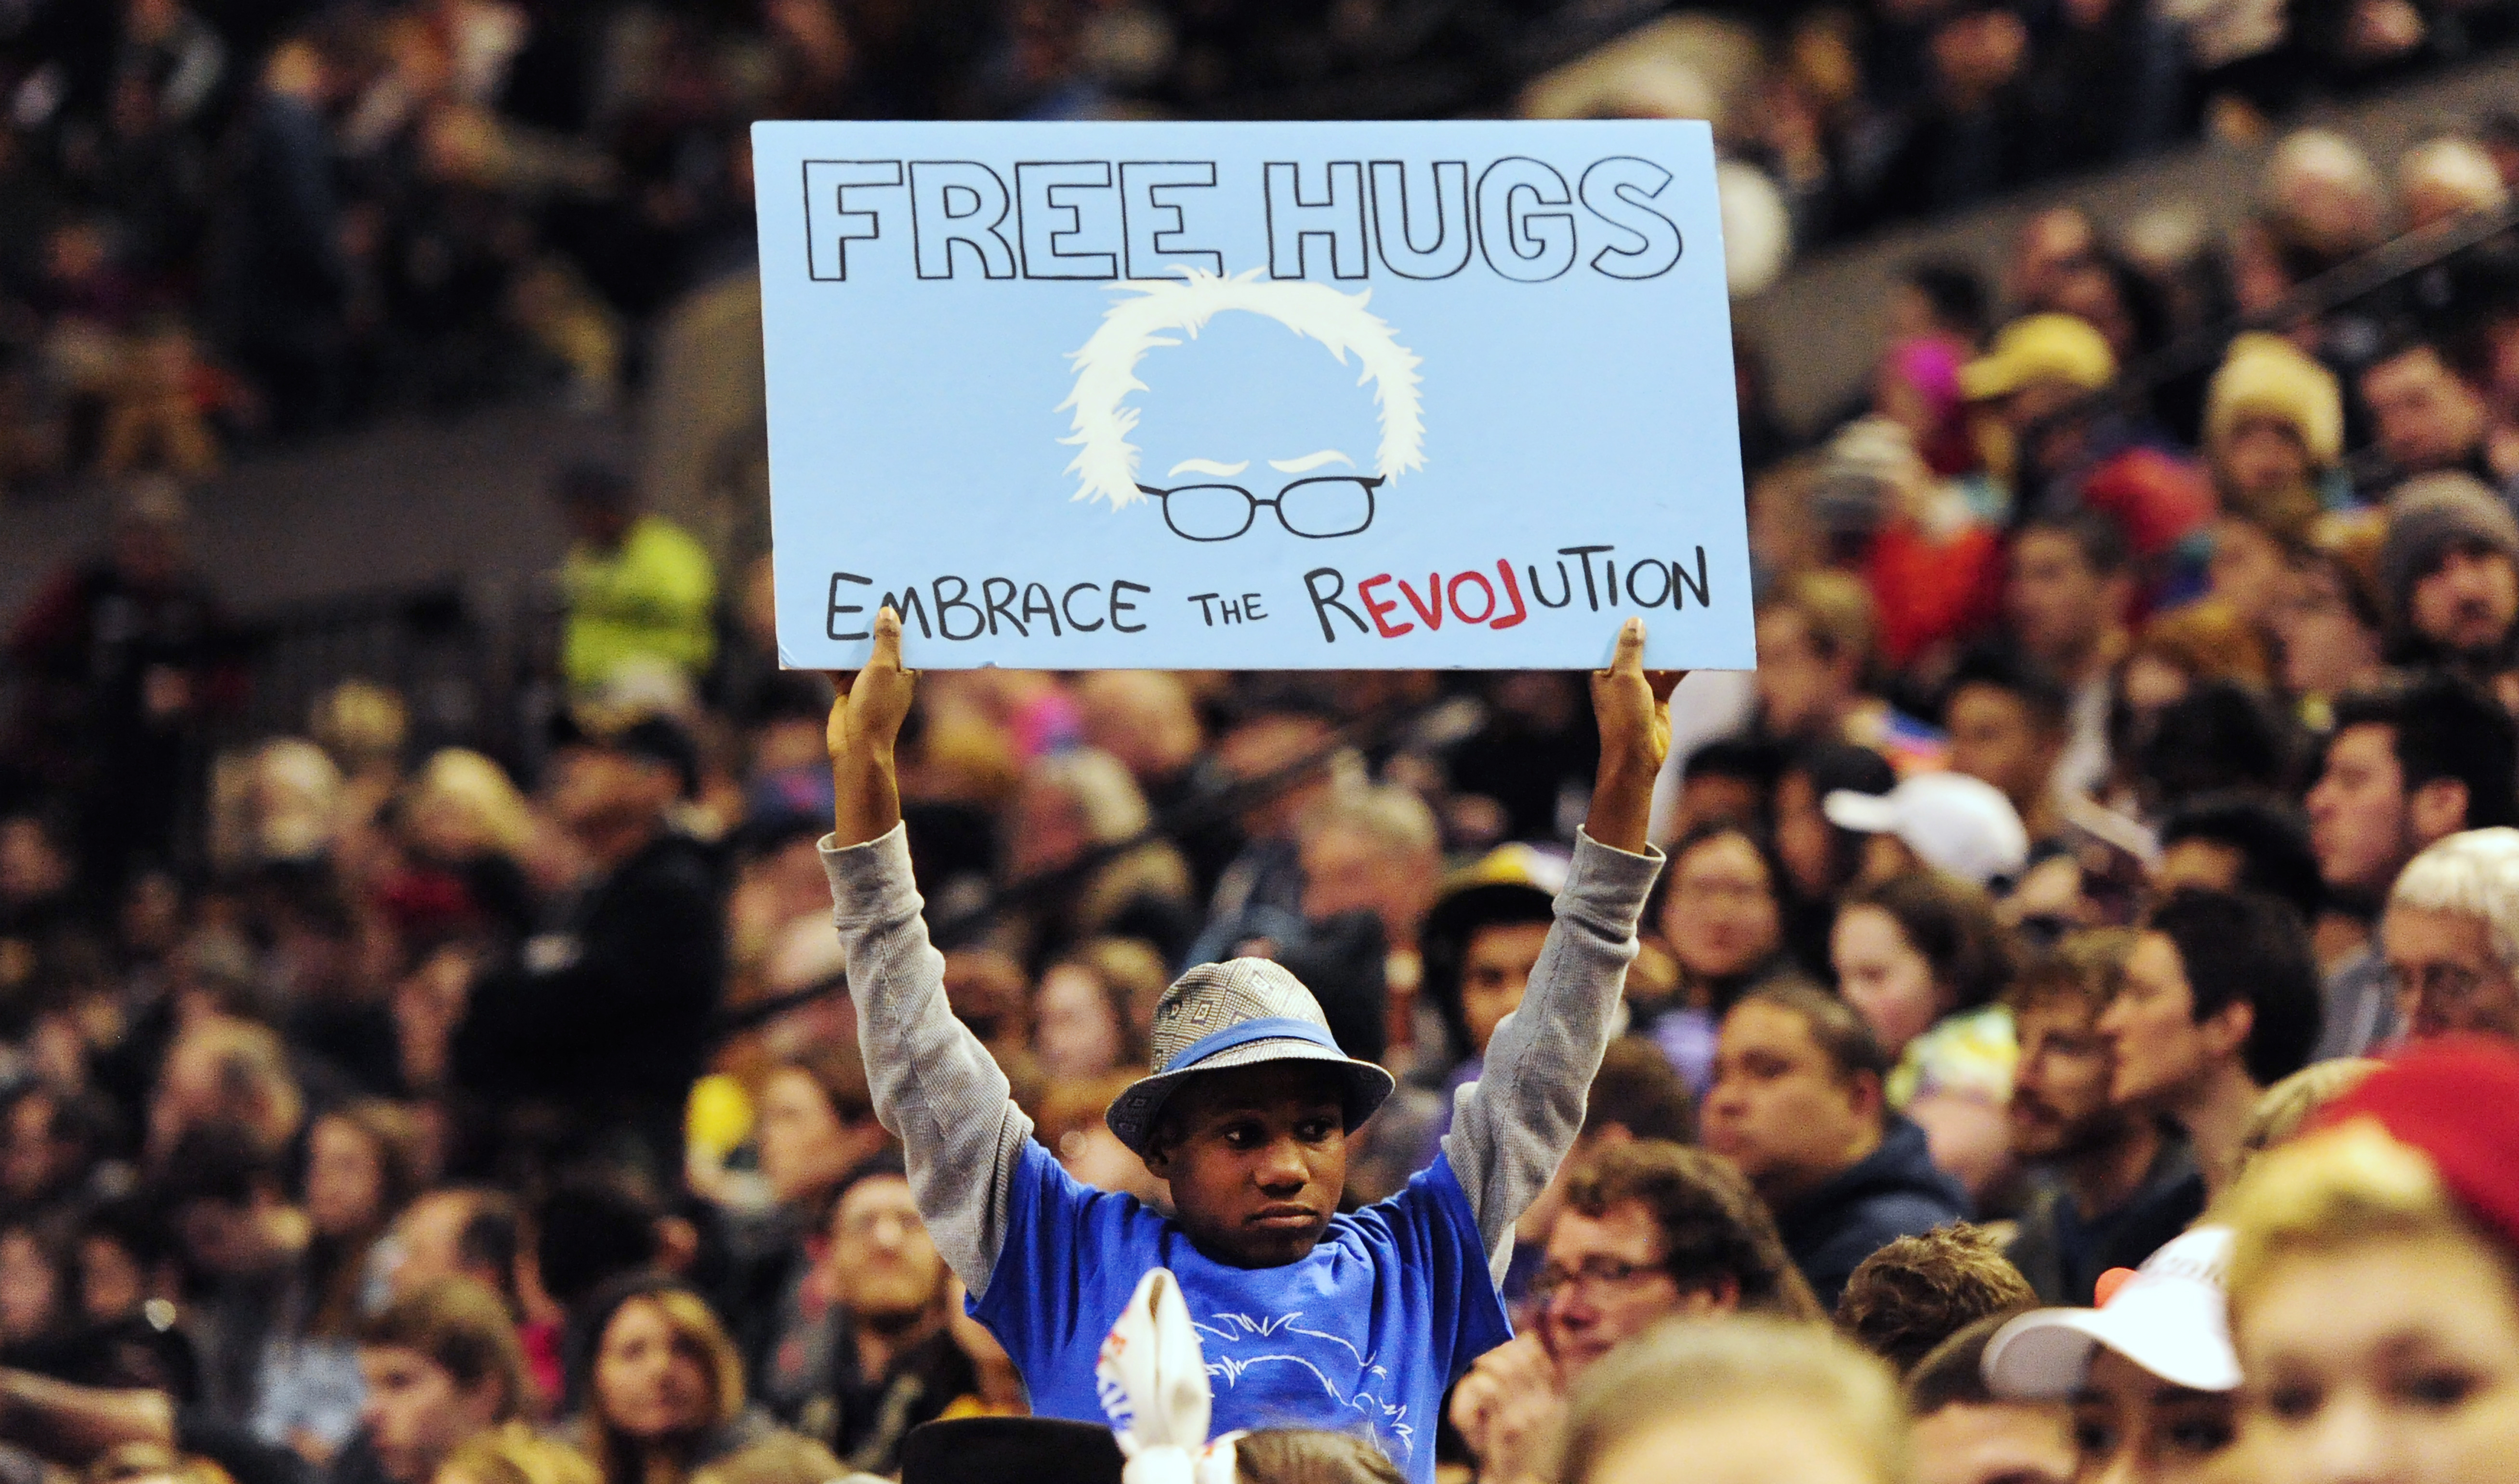 This photo taken March 25, 2016, shows a young supporter holding up a sign as then Democratic presidential candidate Bernie Sanders, I-Vt., addressed the crowd during a rally at the Moda Center in Portland, Ore.(Steve Dykes/The Oregonian via AP)